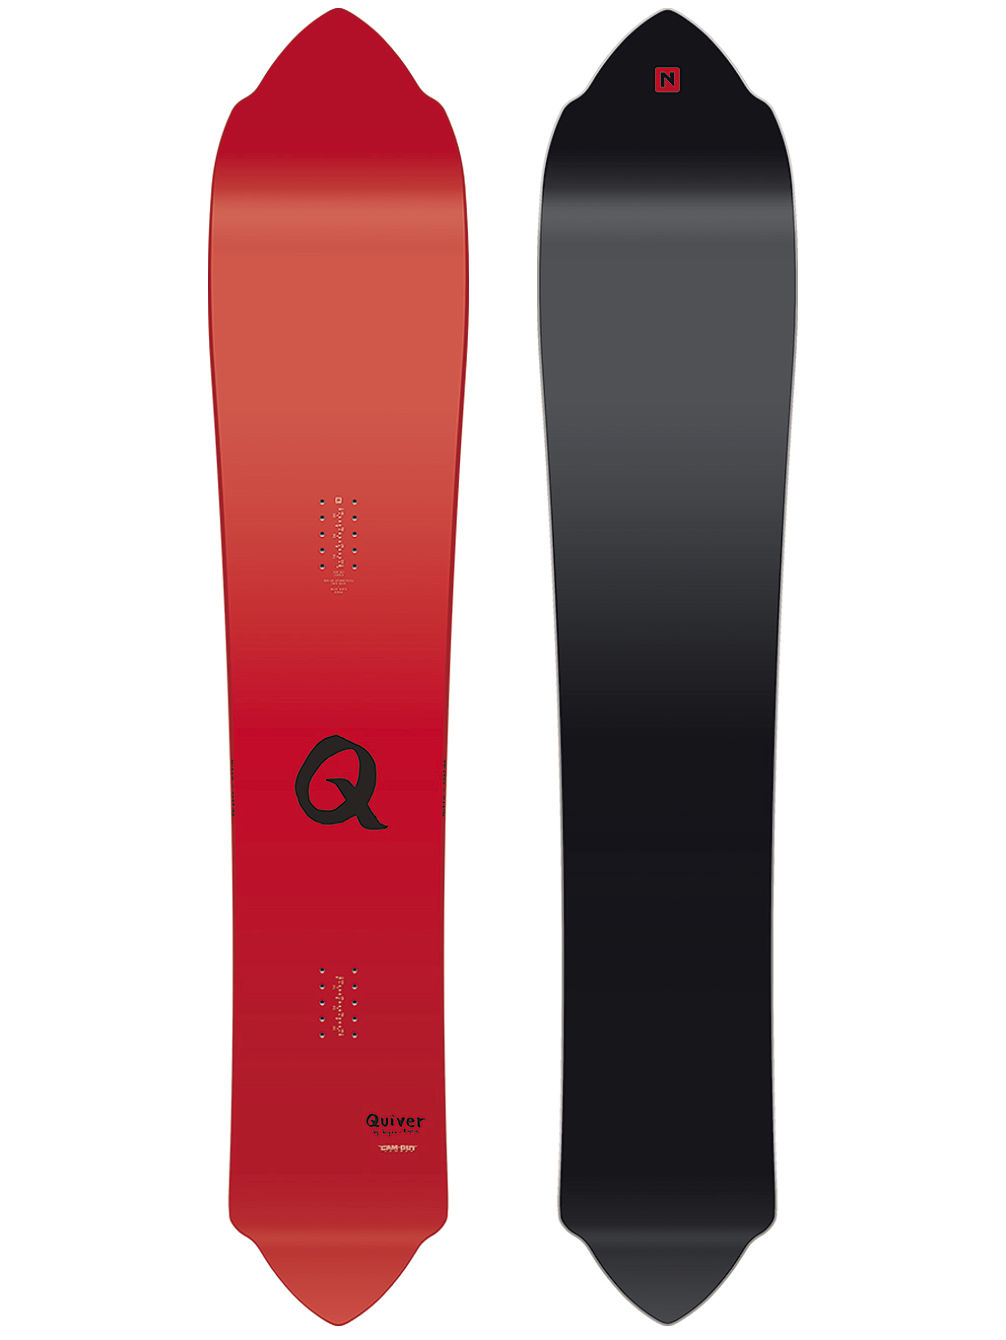 The Quiver Nuat 163 2018 Snowboard